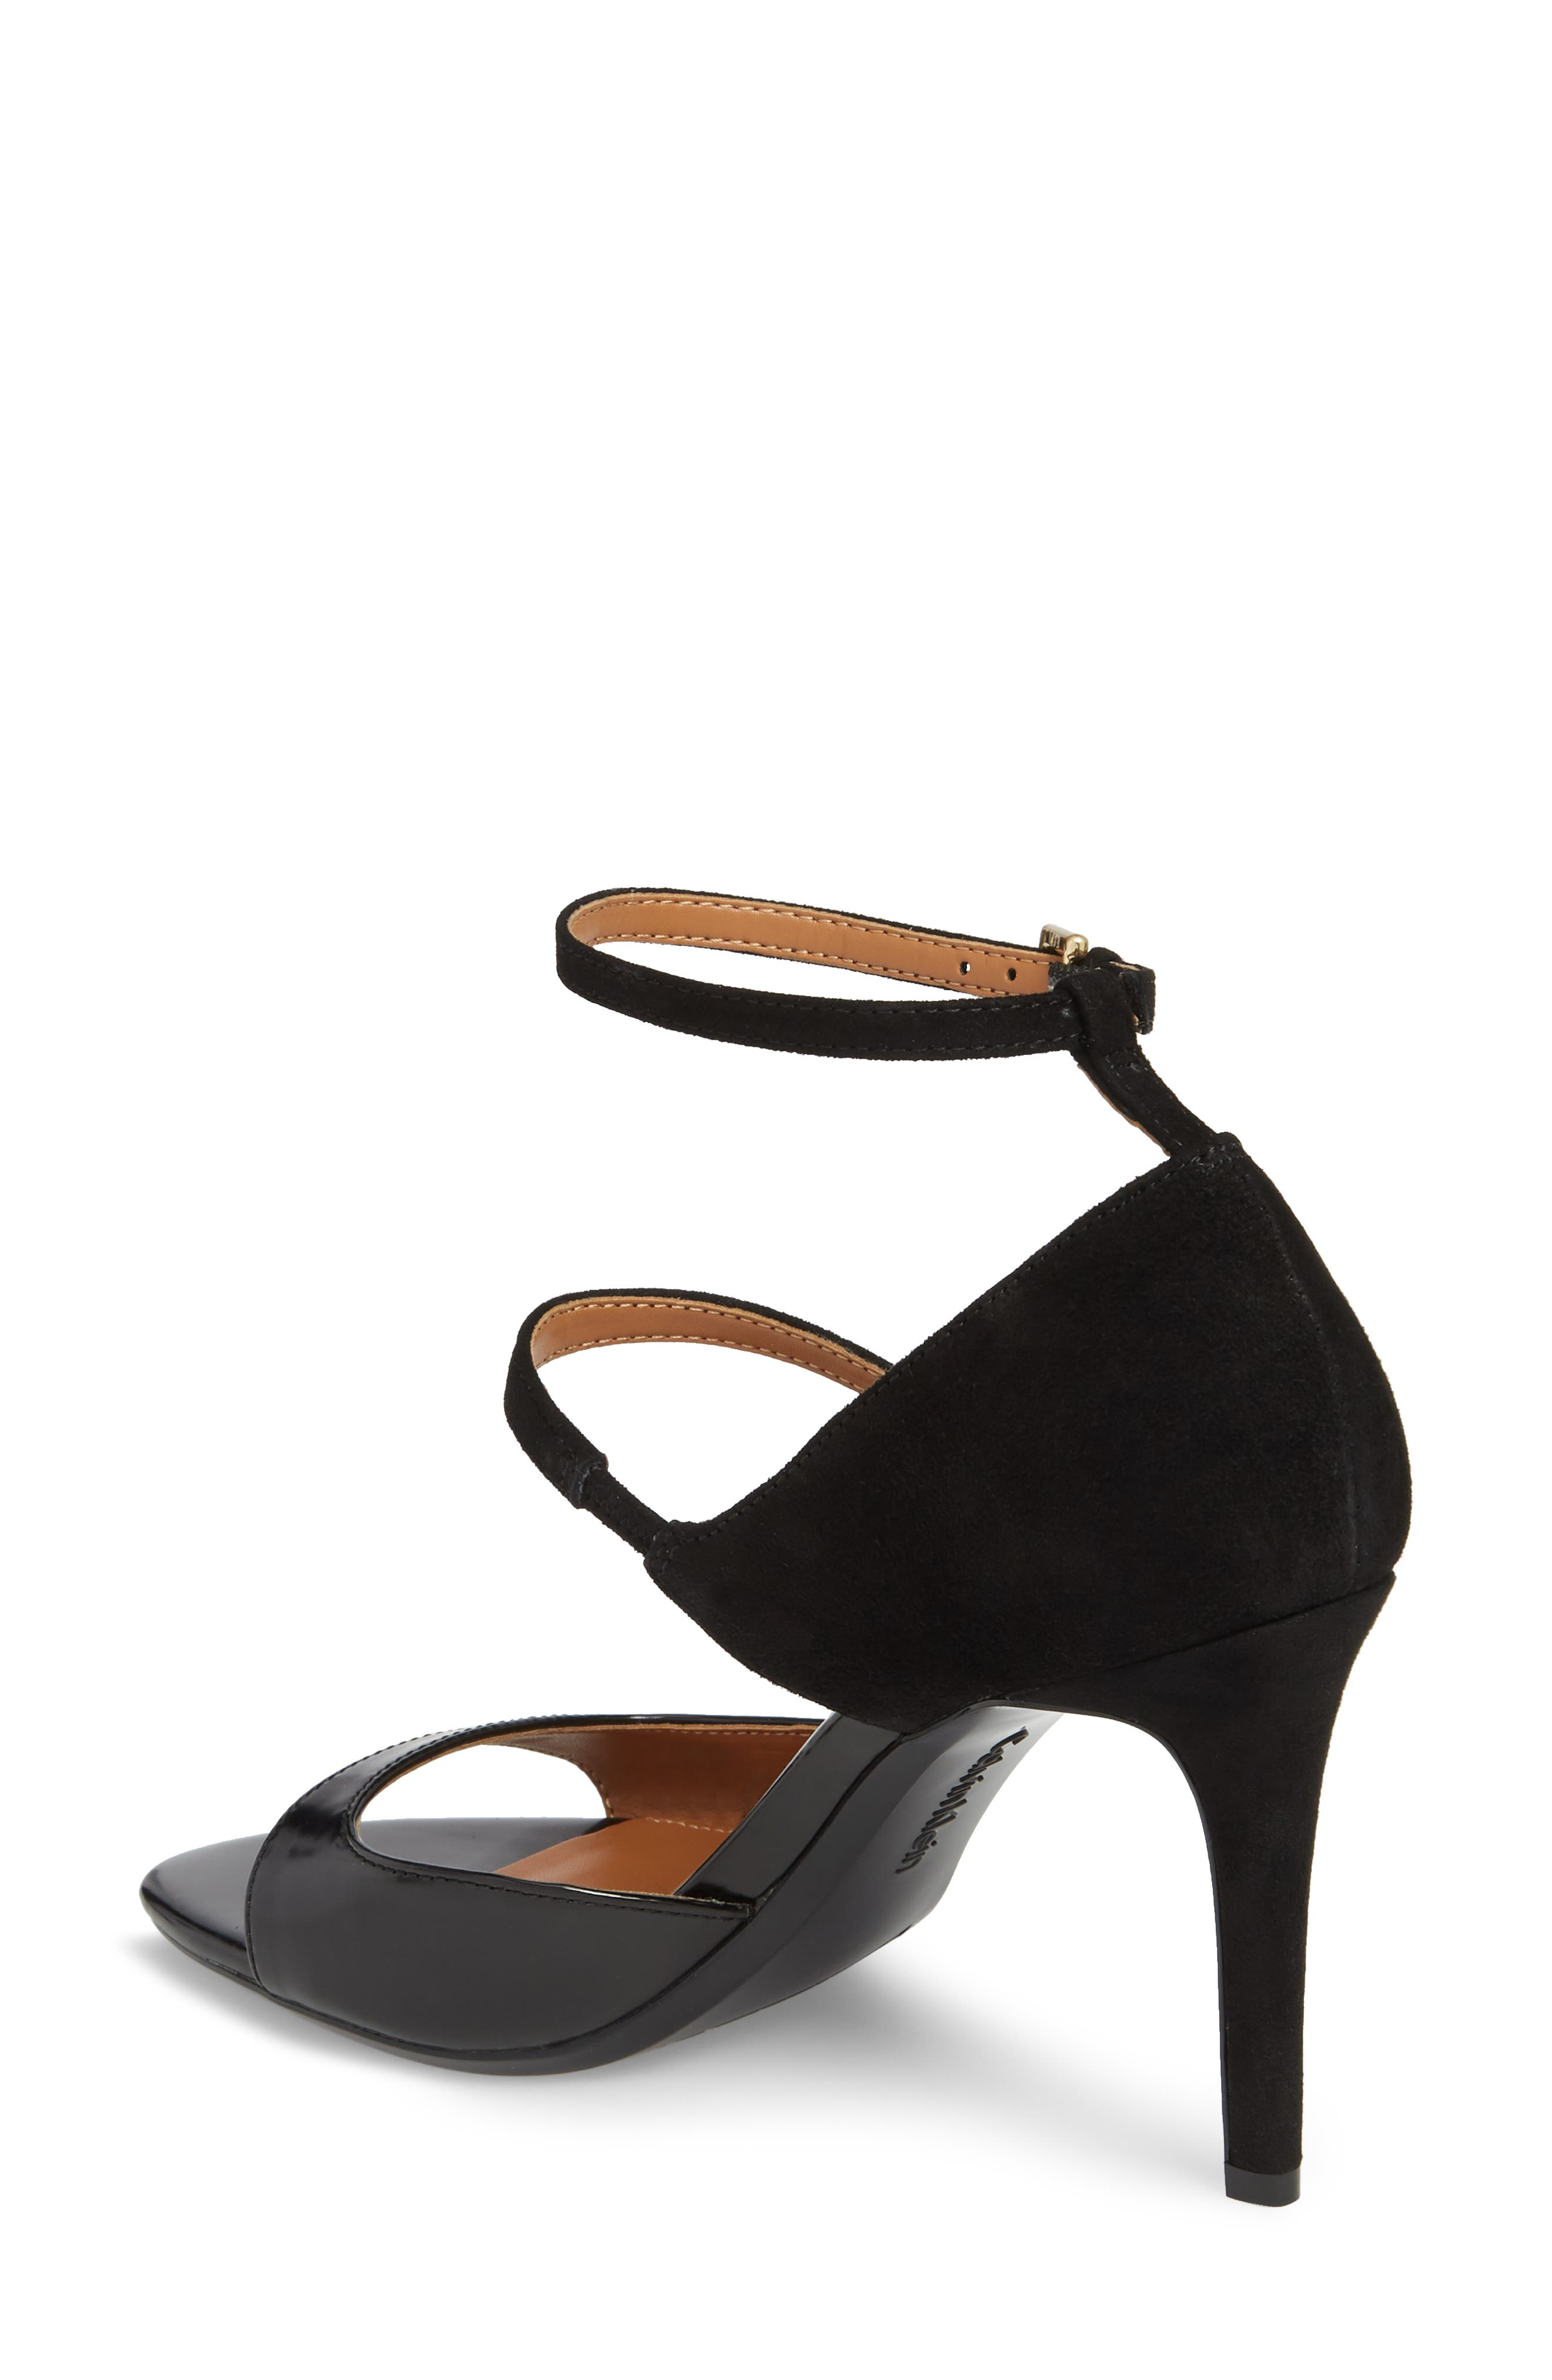 Nadeen Strappy Sandal,                             Alternate thumbnail 2, color,                             BLACK LEATHER